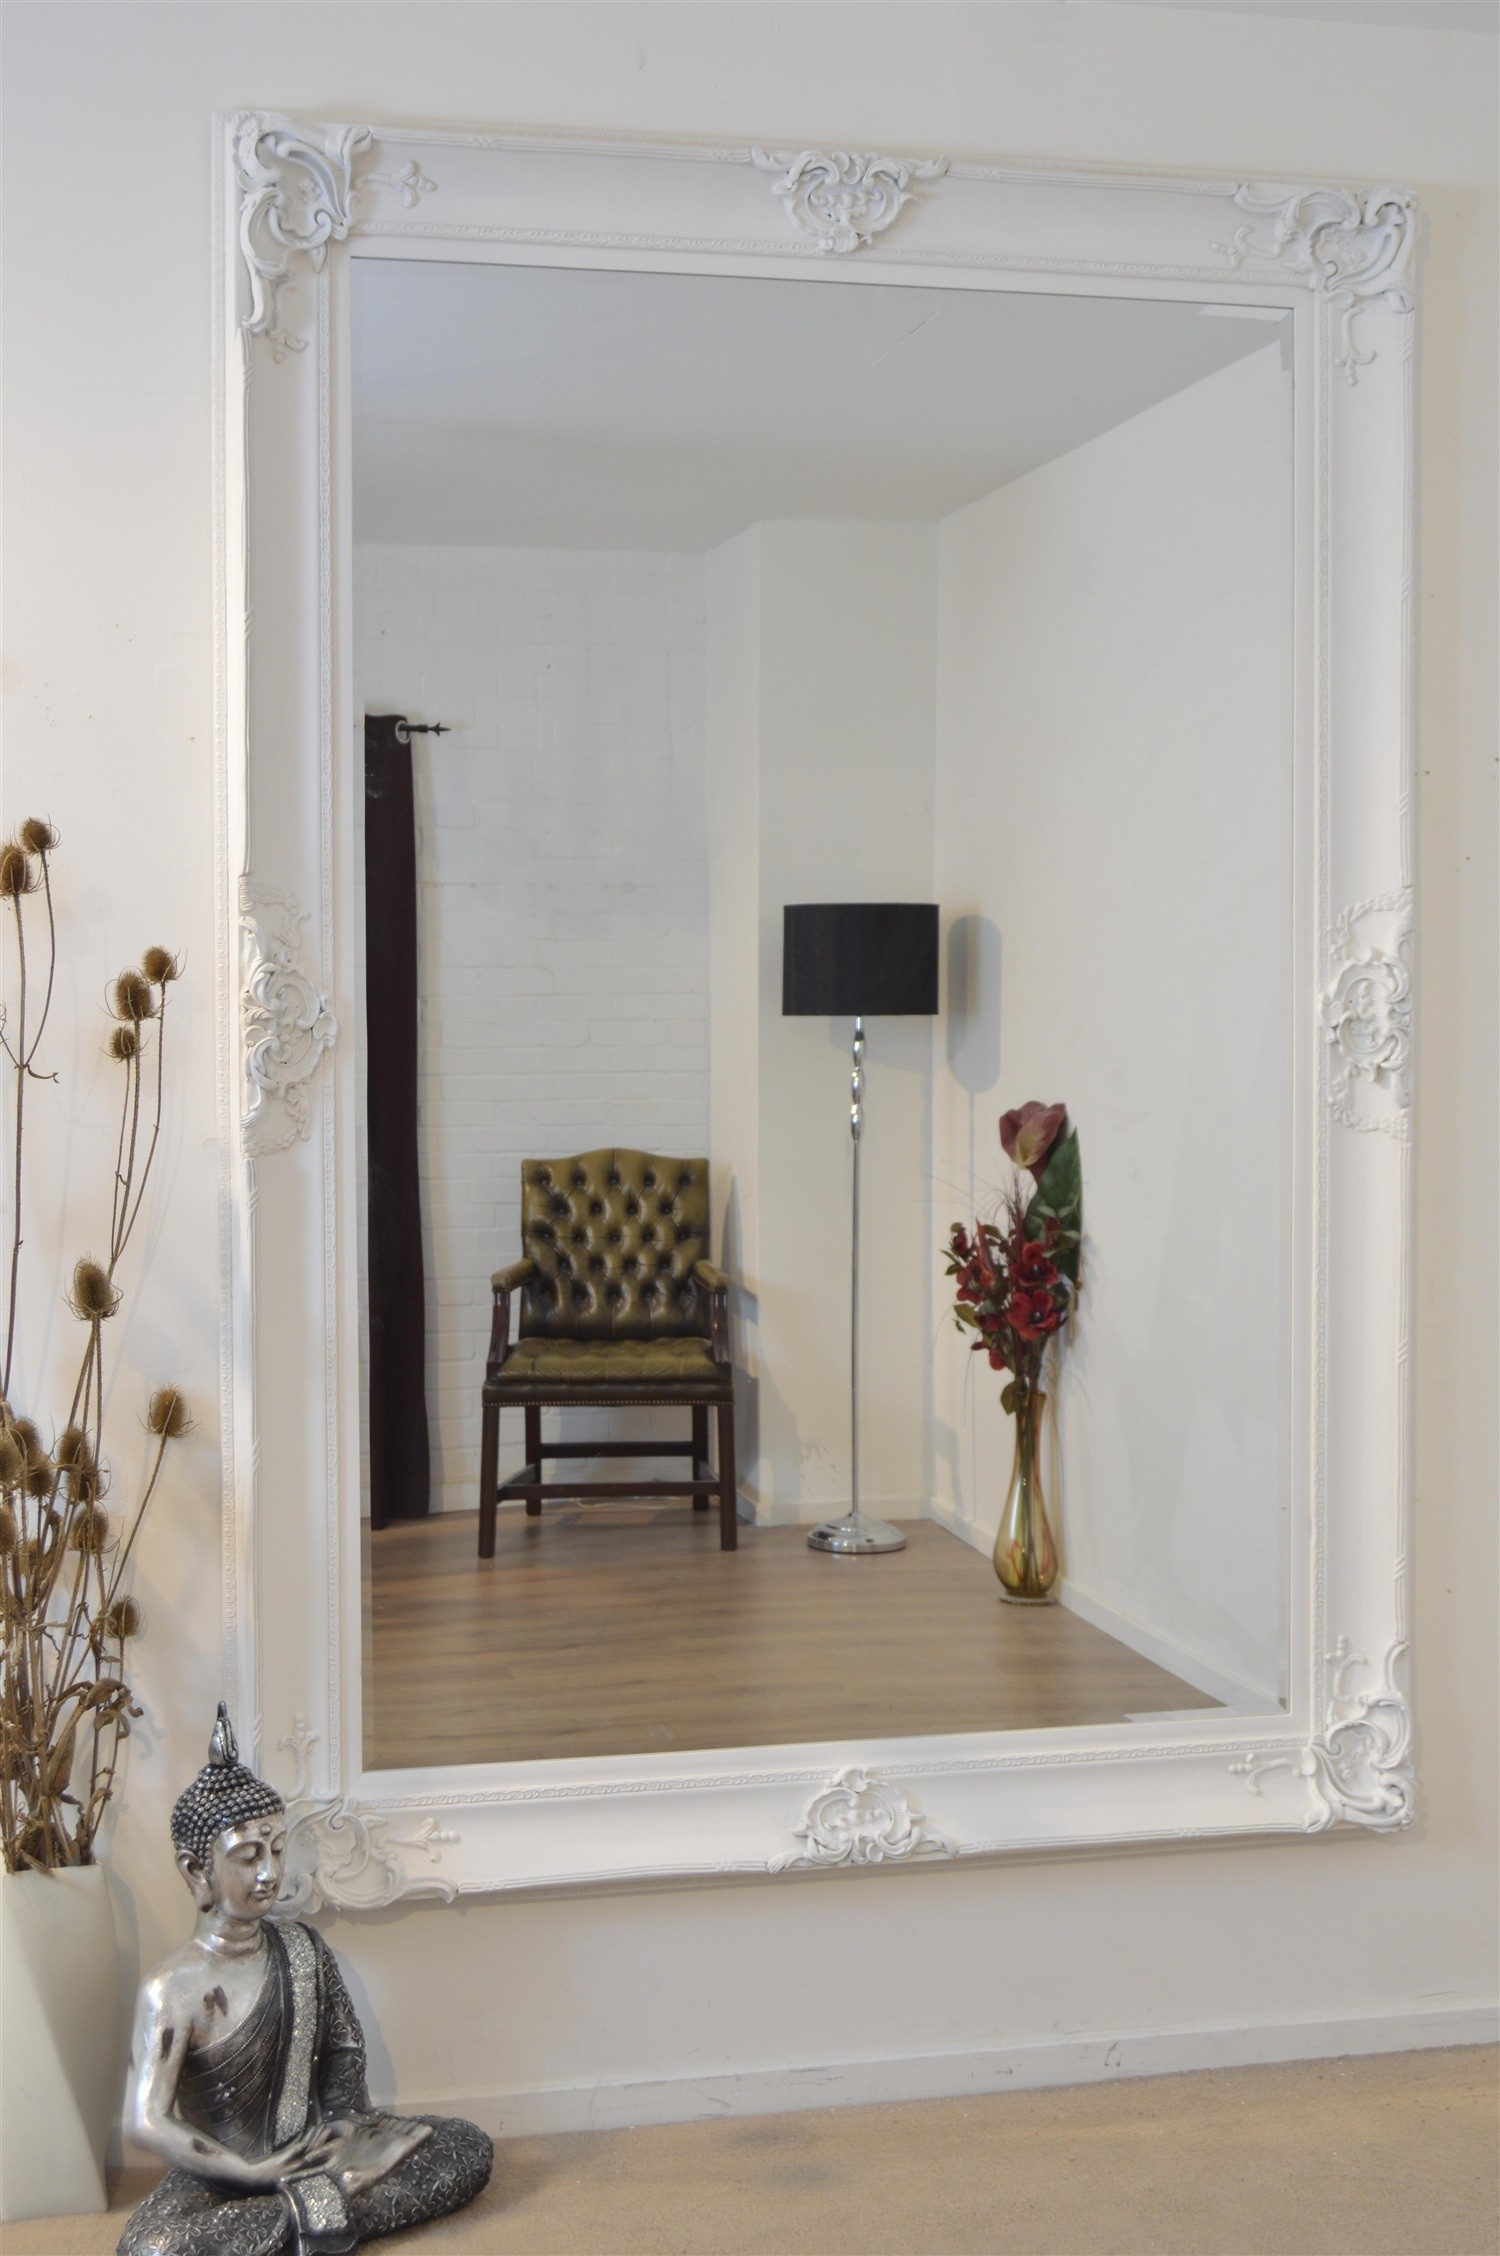 White Decorative Wall Mirror Inarace Throughout Large Ornate White Mirror (Image 12 of 15)